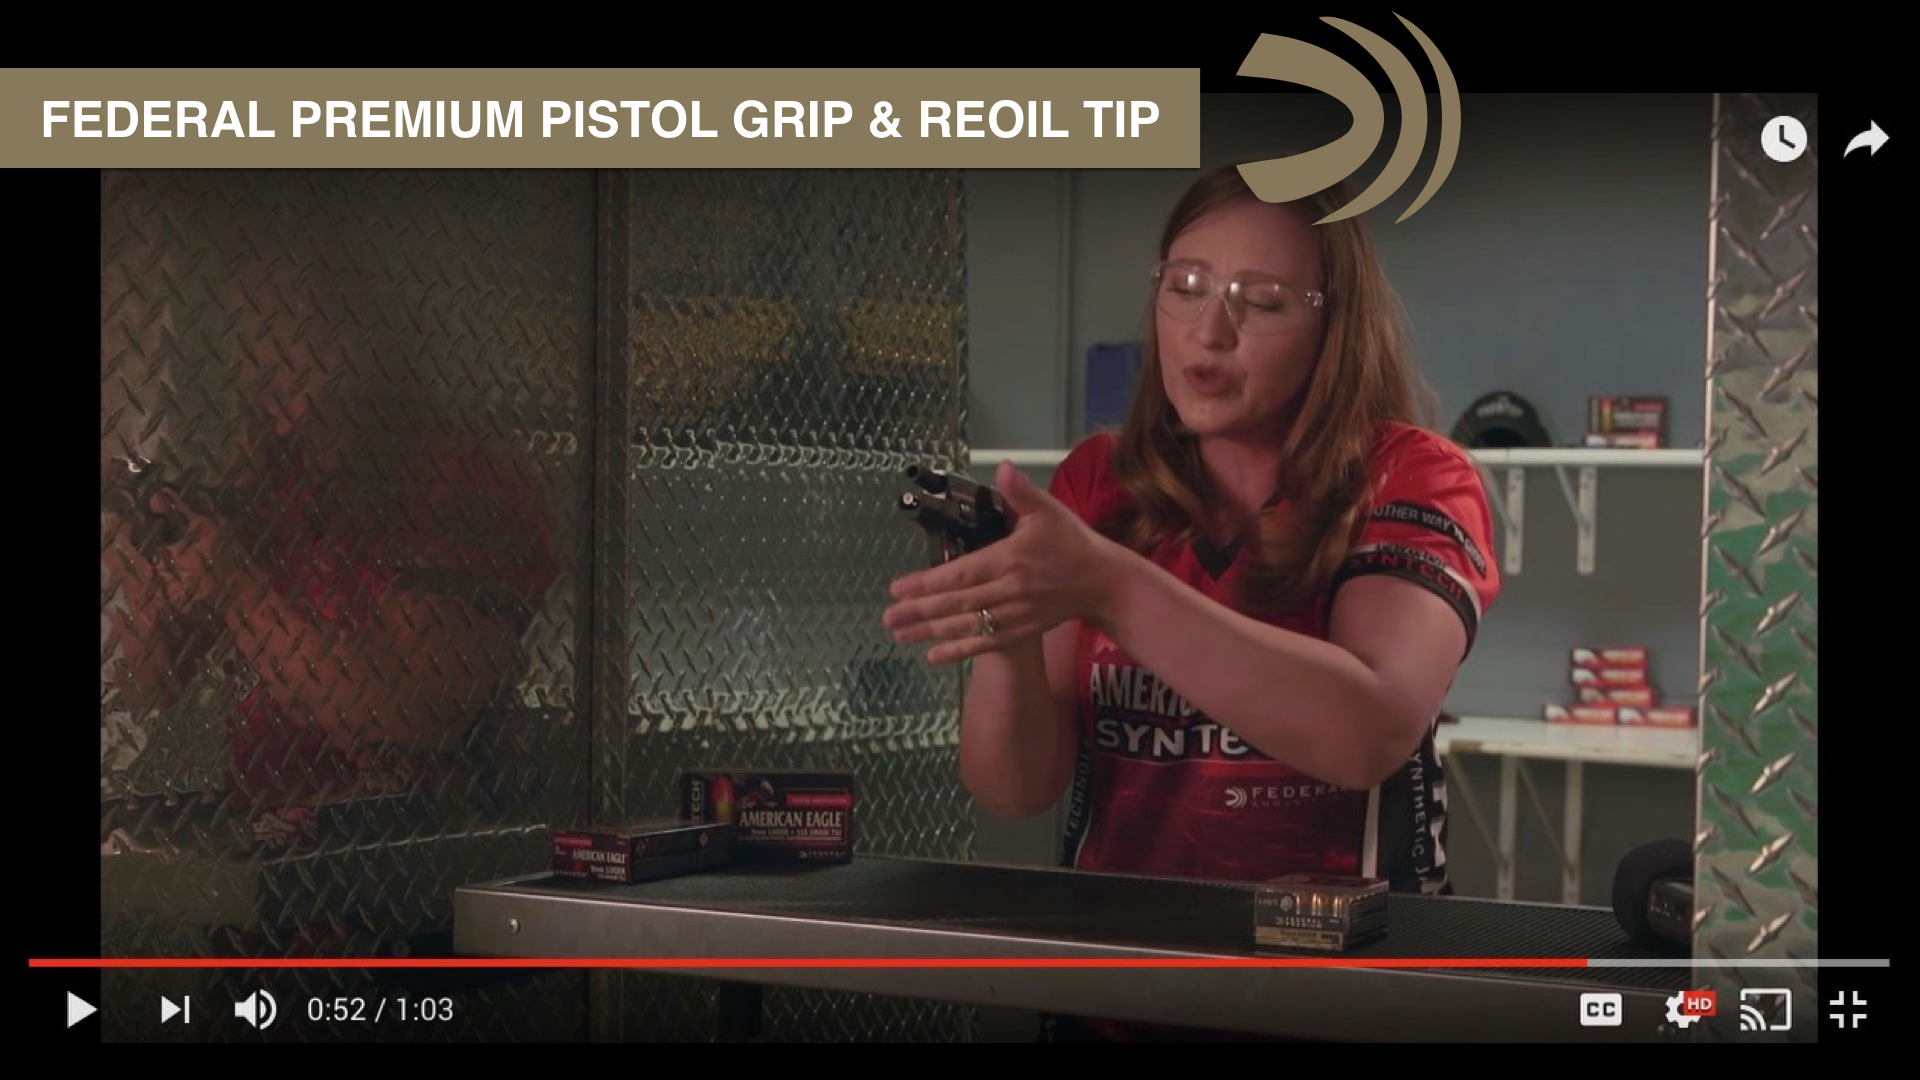 Control recoil better with this tip from Federal Premium & Julie Golob